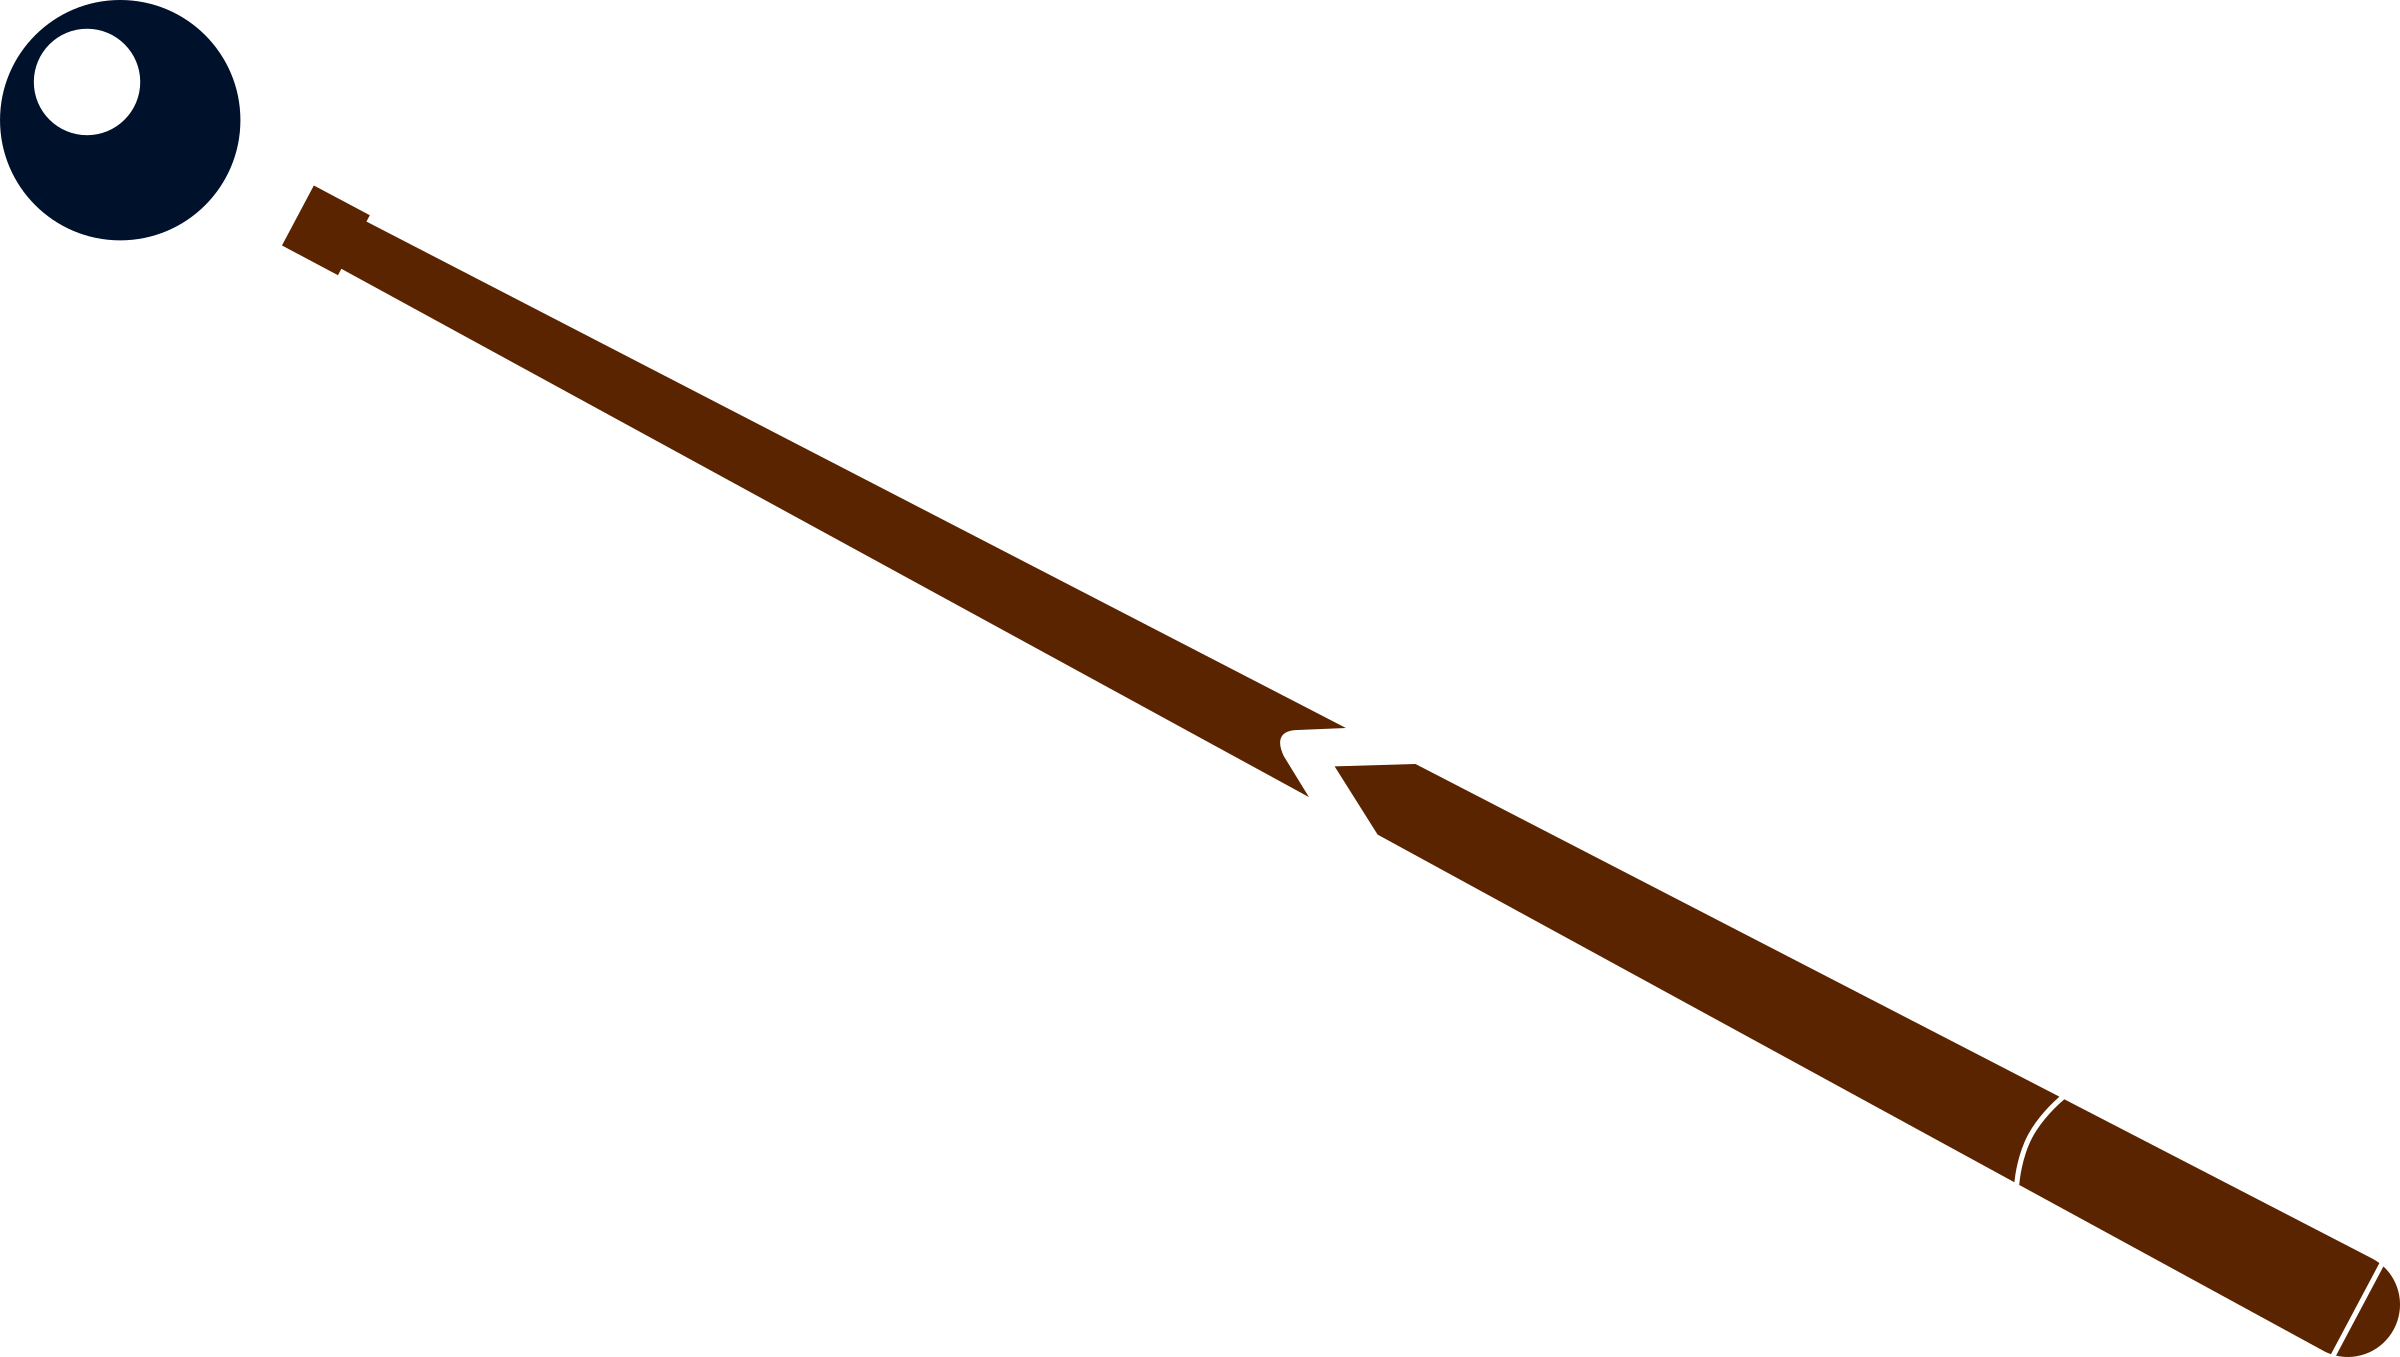 Cue Stick clipart #6, Download drawings